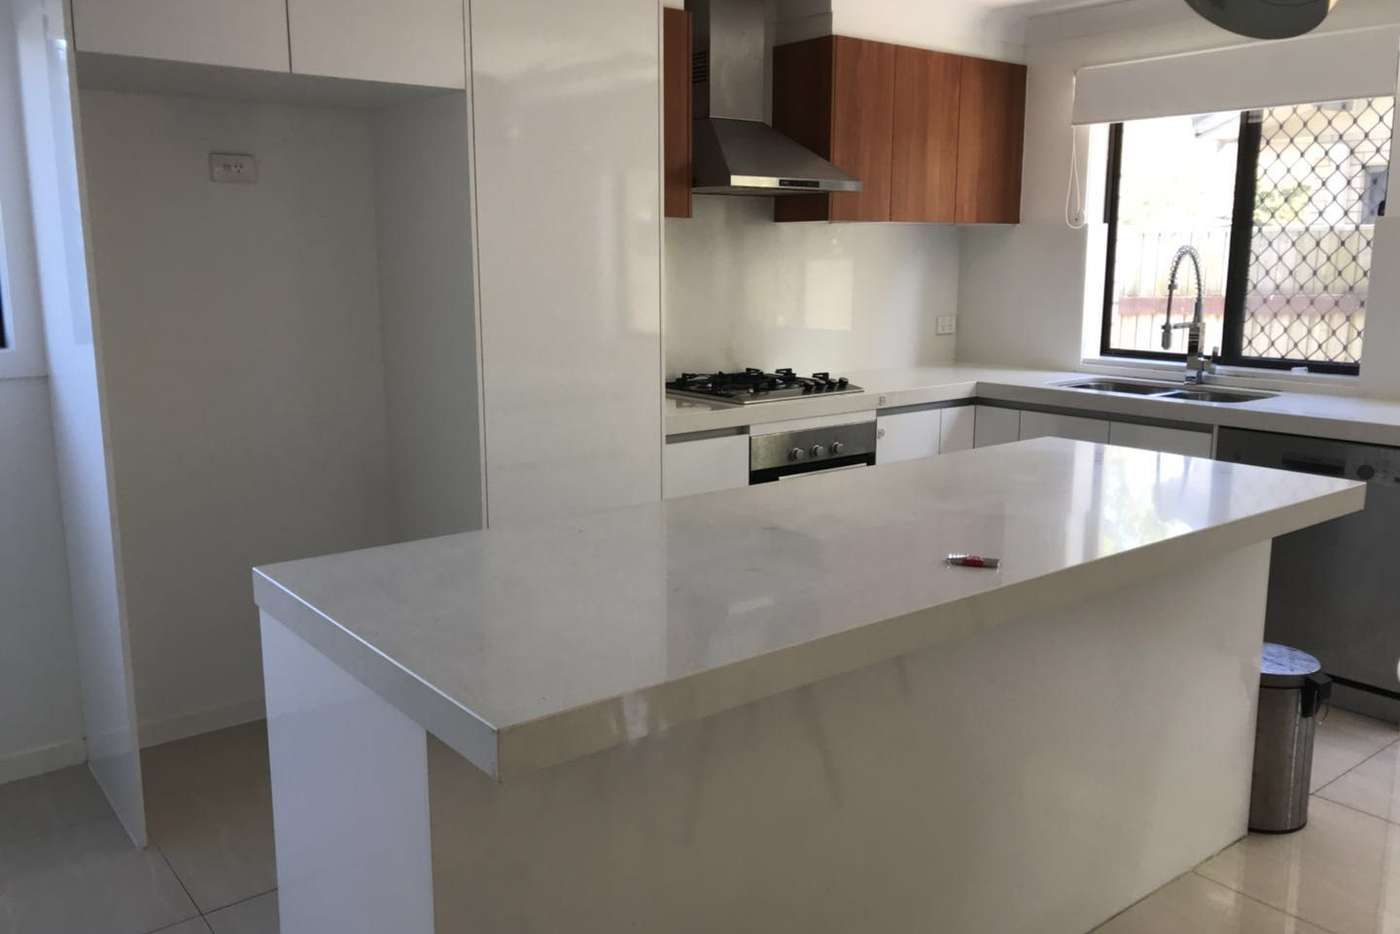 Seventh view of Homely house listing, Room 3/196 Mccullough St, Sunnybank QLD 4109